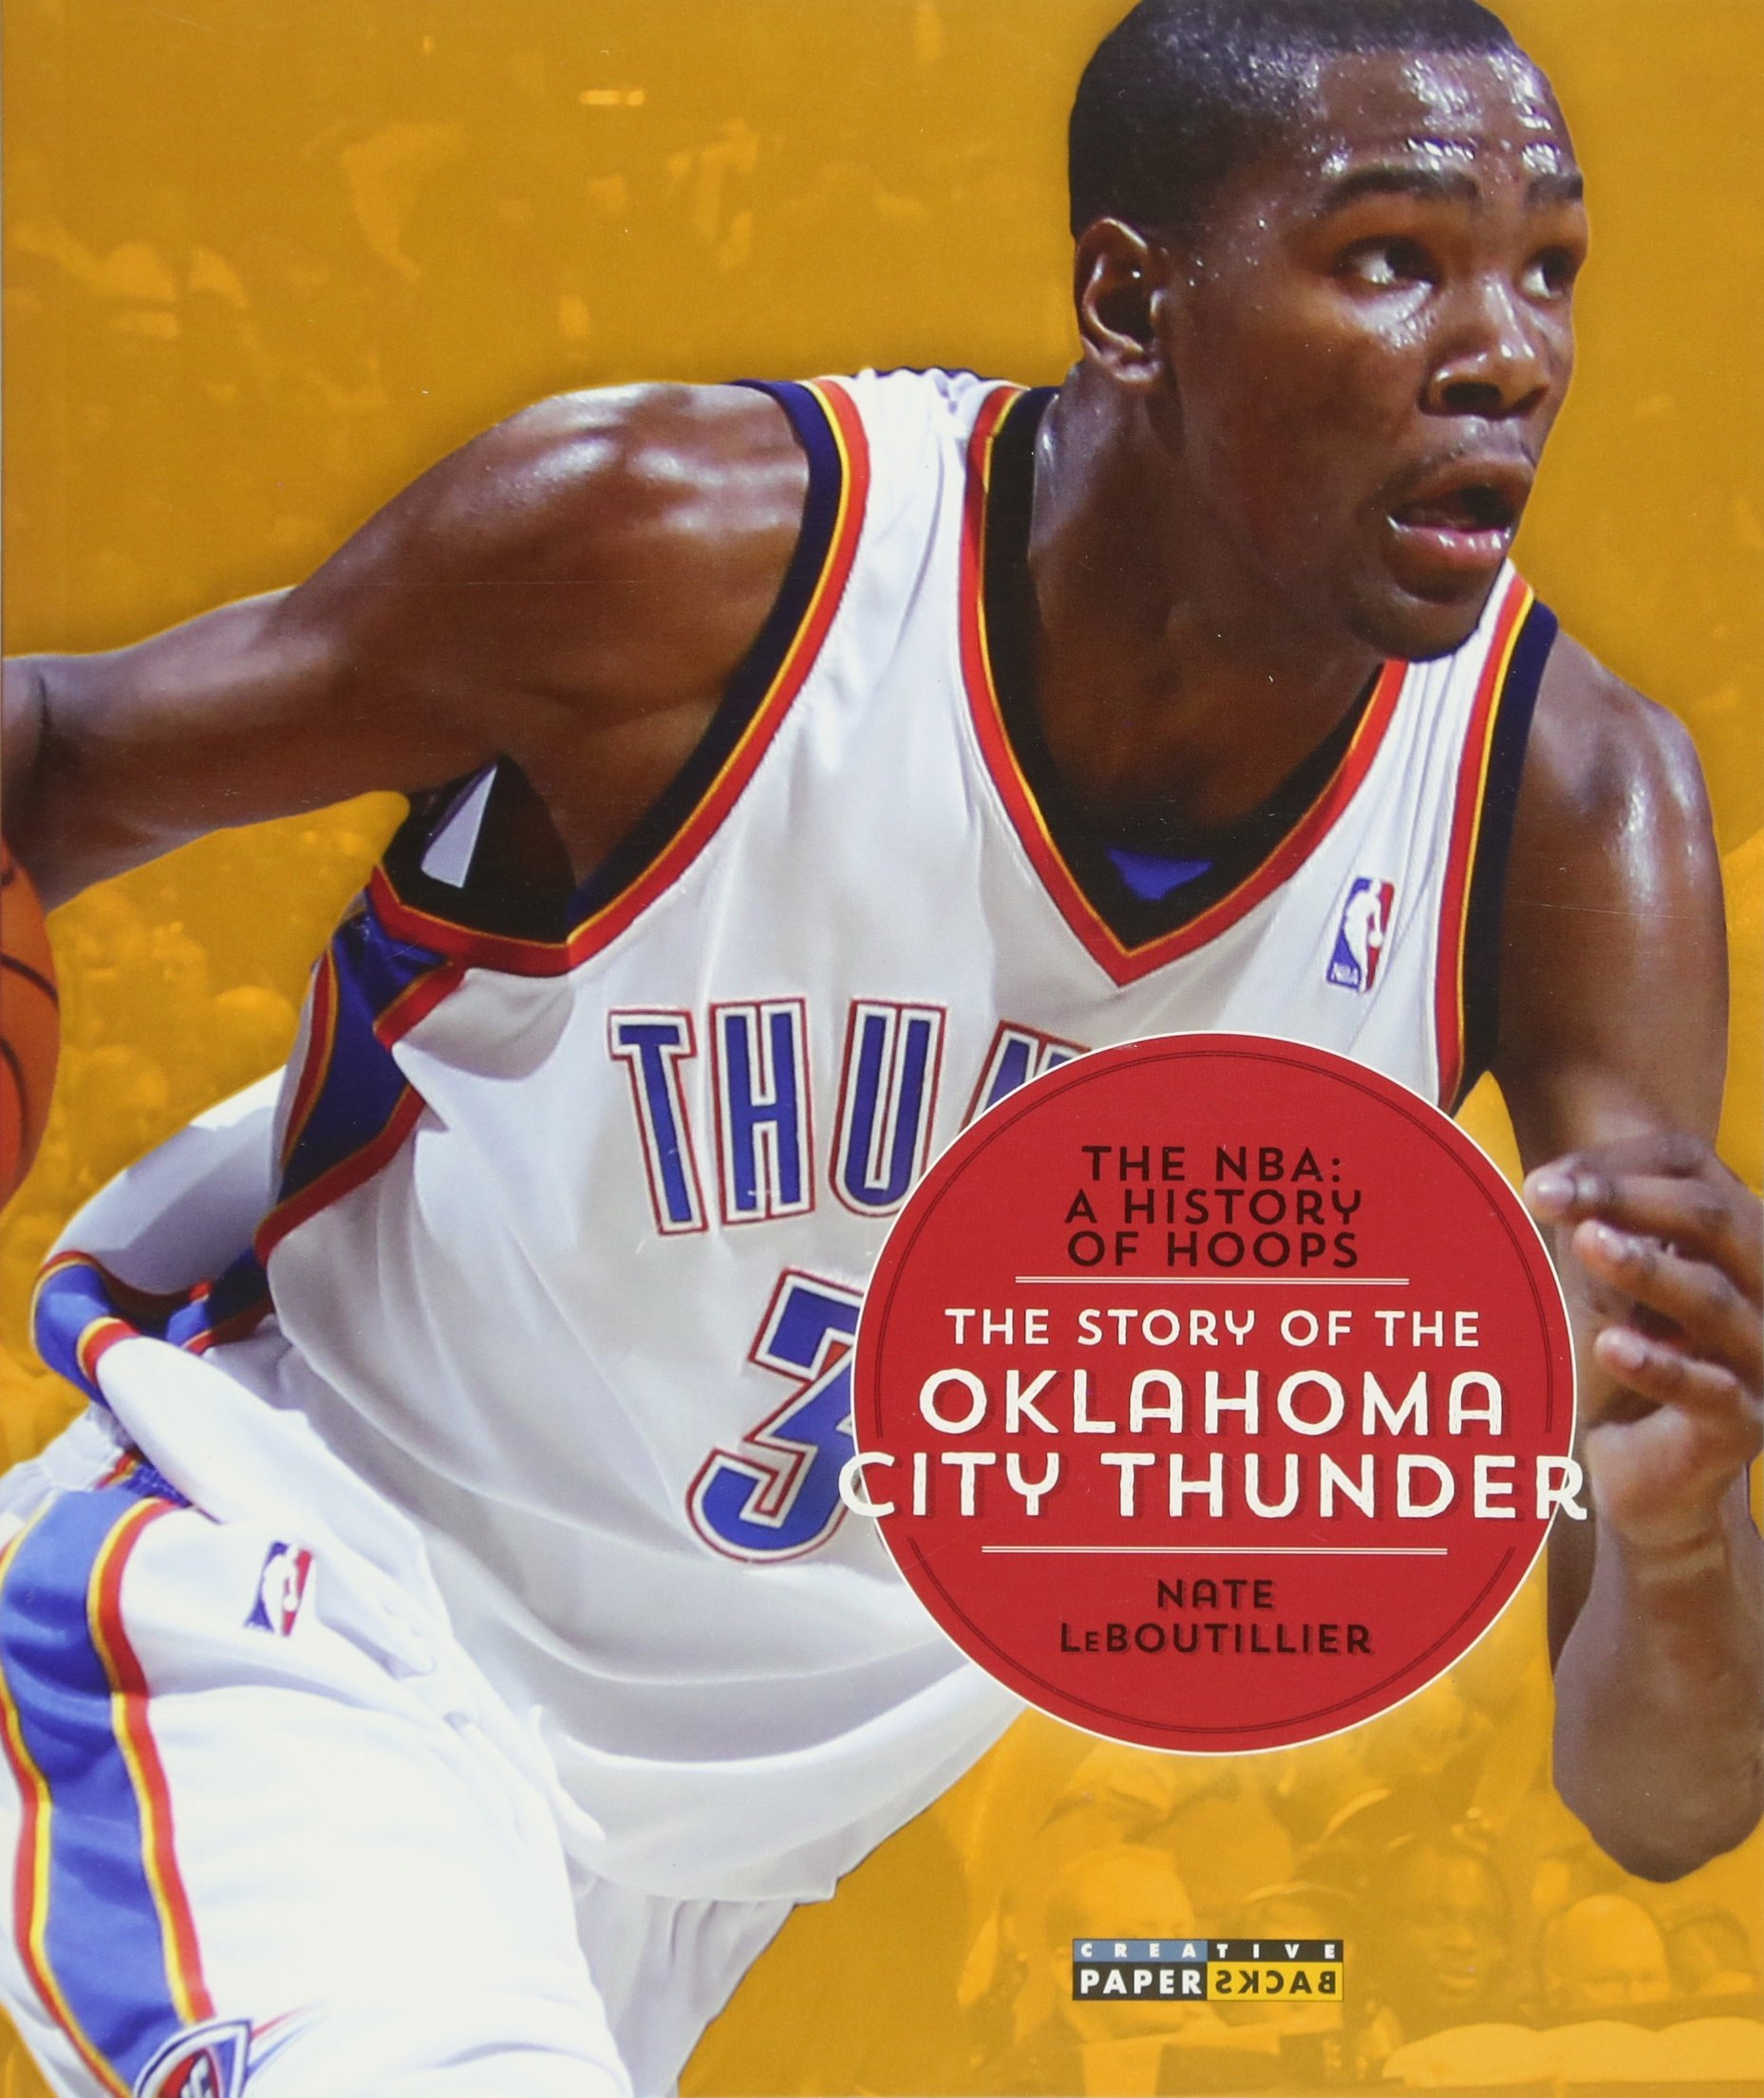 The NBA: A History of Hoops: The Story of the Oklahoma City Thunder